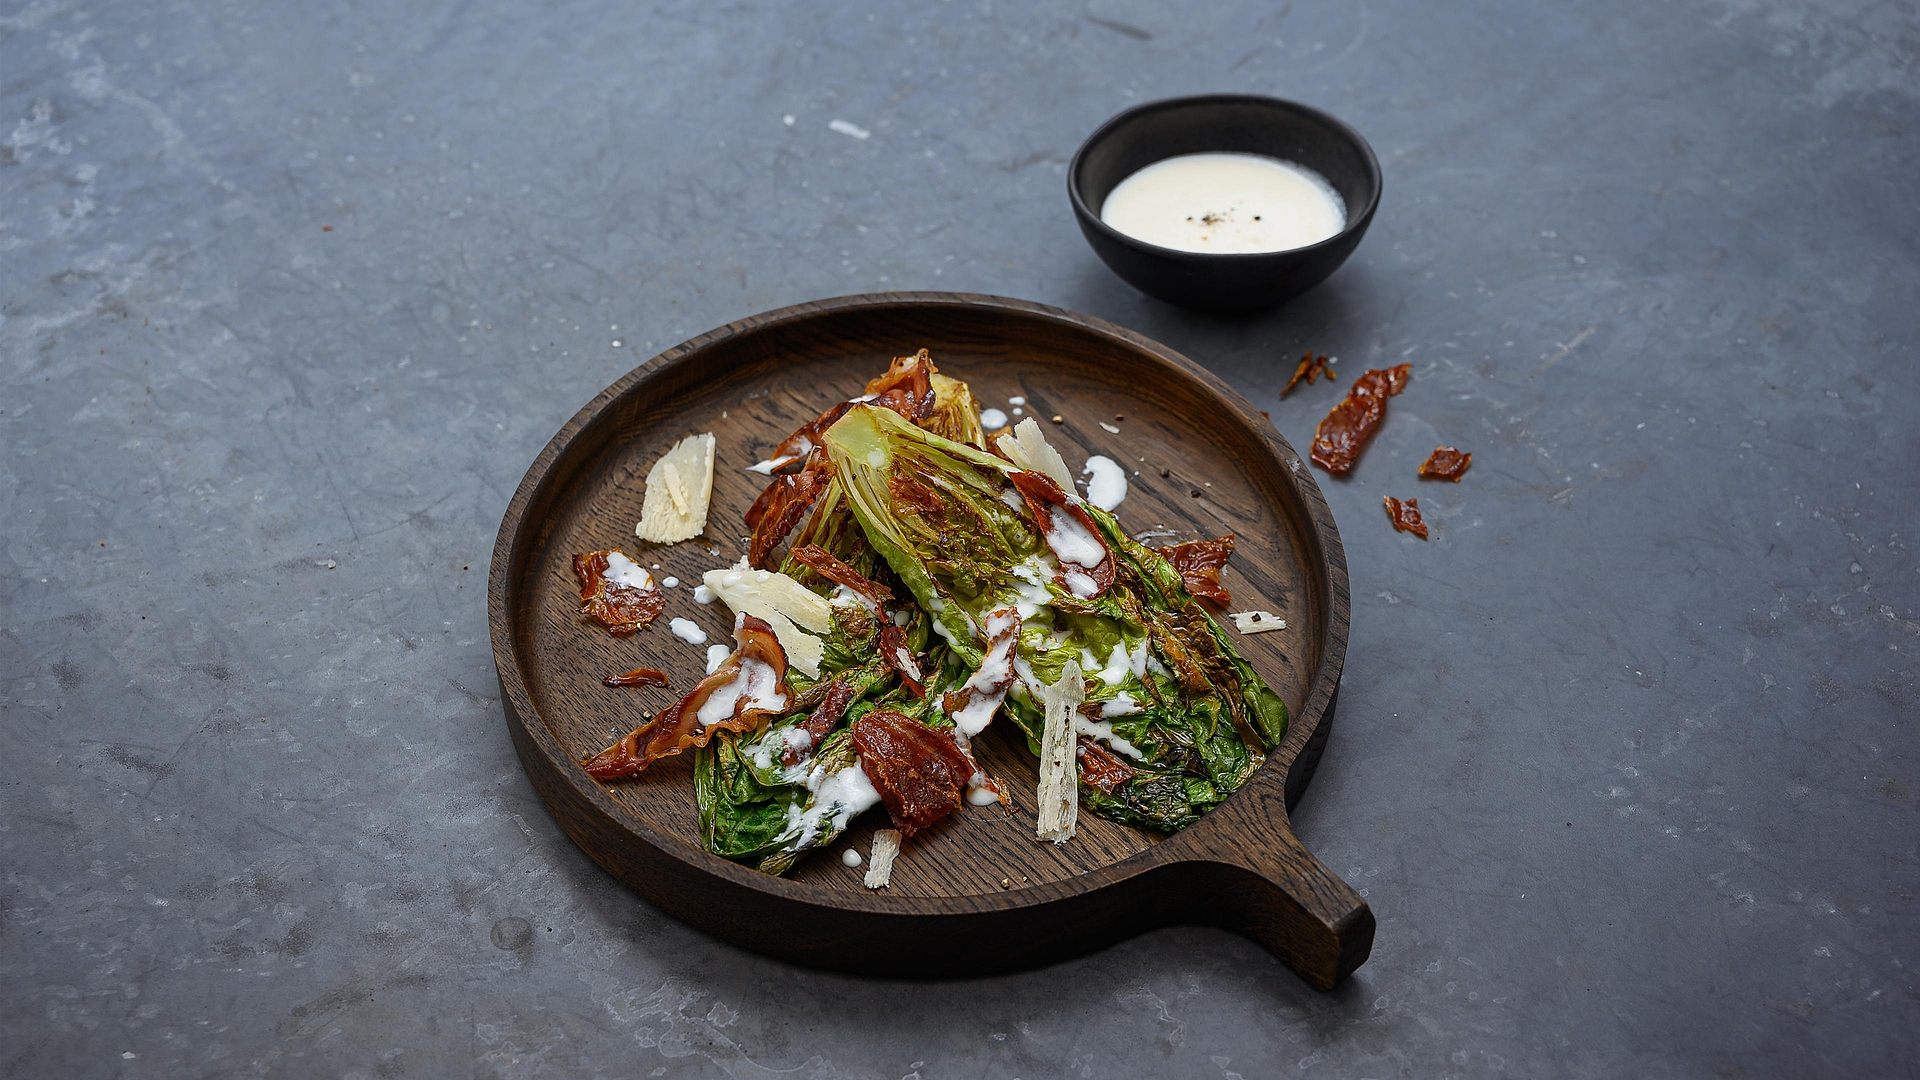 Grilled romaine lettuce with Parmesan dressing and crispy South Tyrolean bacon